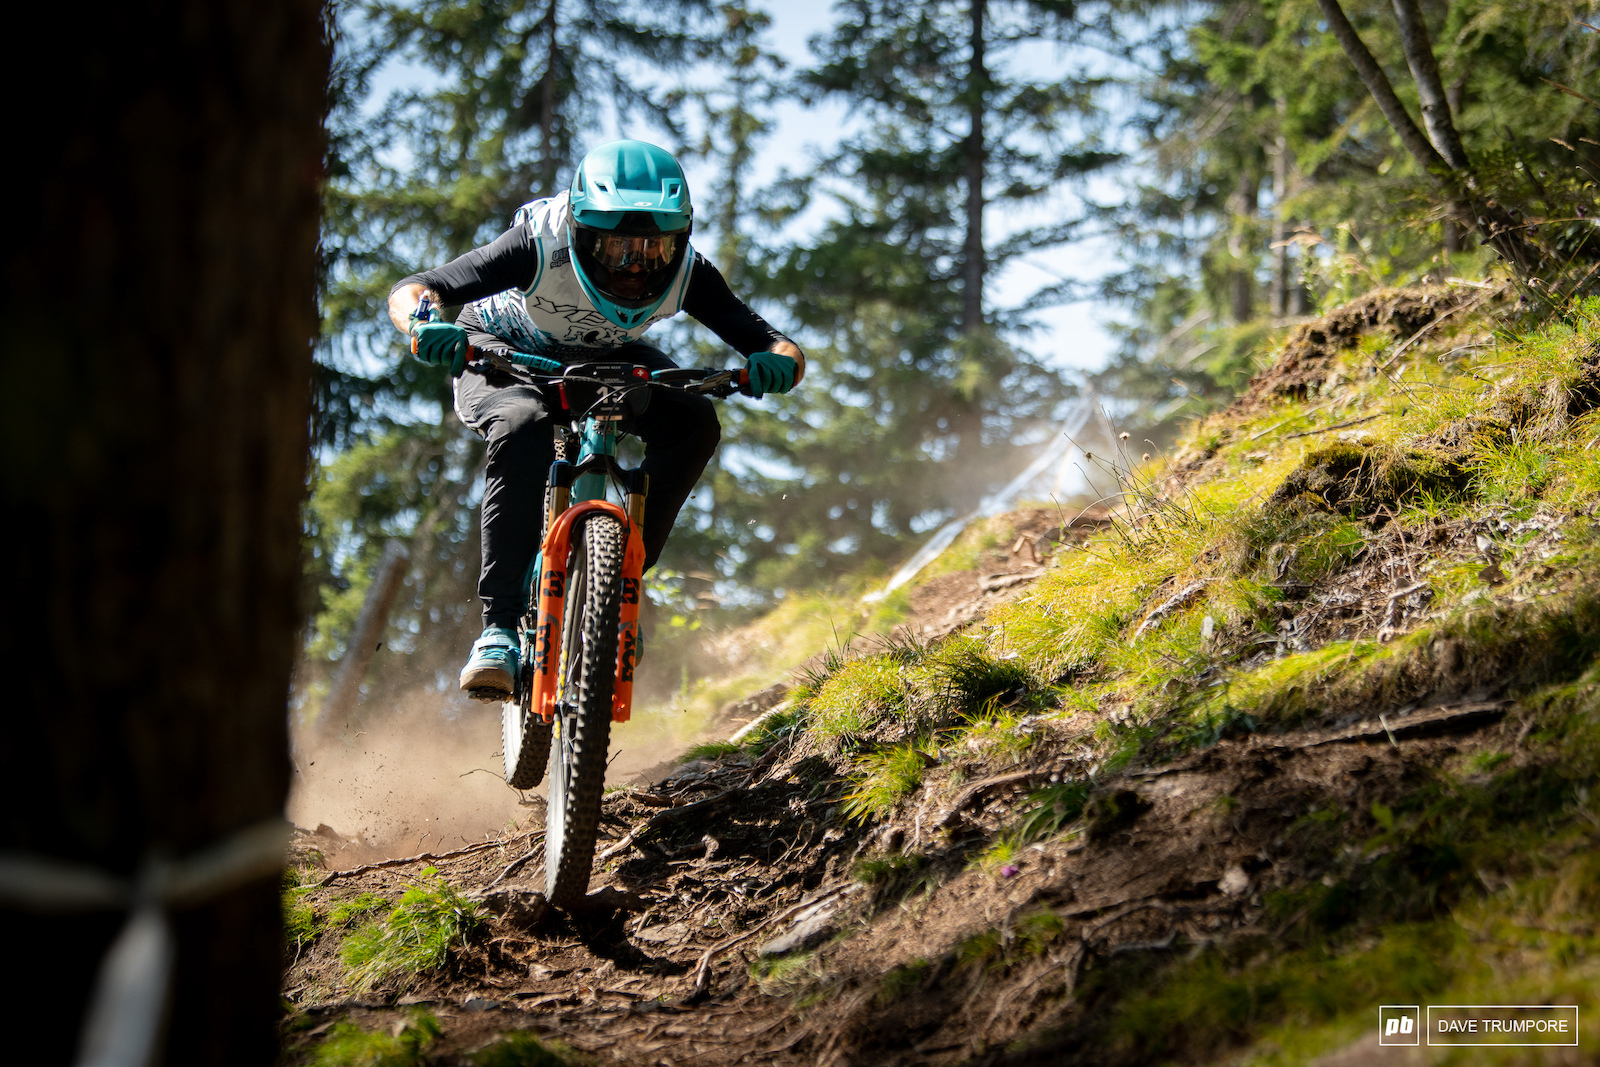 Shawn Neer on the dusty natural terrain of Stage 4